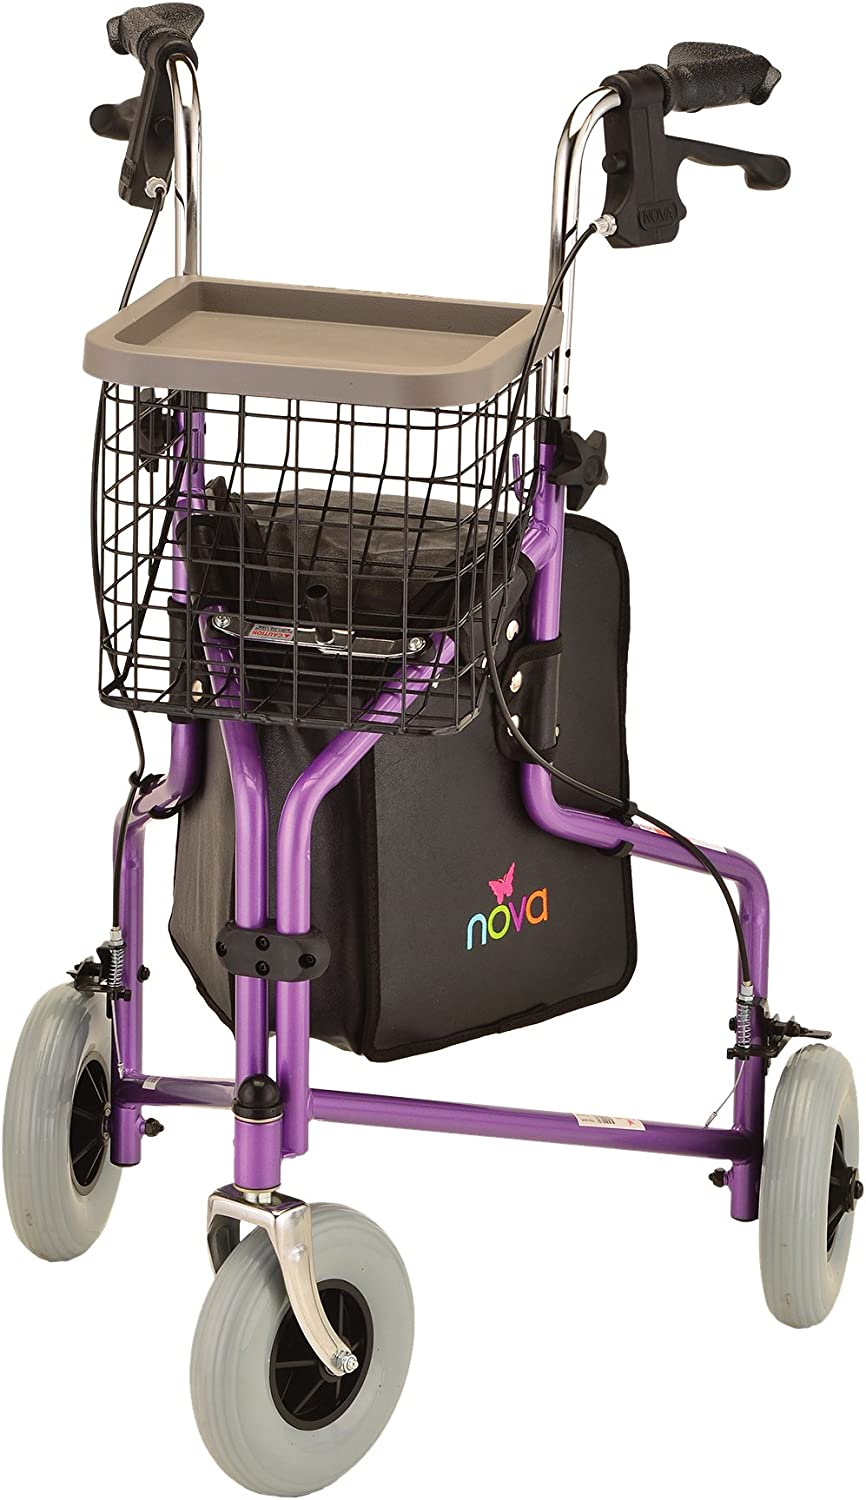 "NOVA Traveler 3 Wheel Rollator Walker, All Terrain 8"" Wheels, Includes Bag, Basket and Tray, Purple"